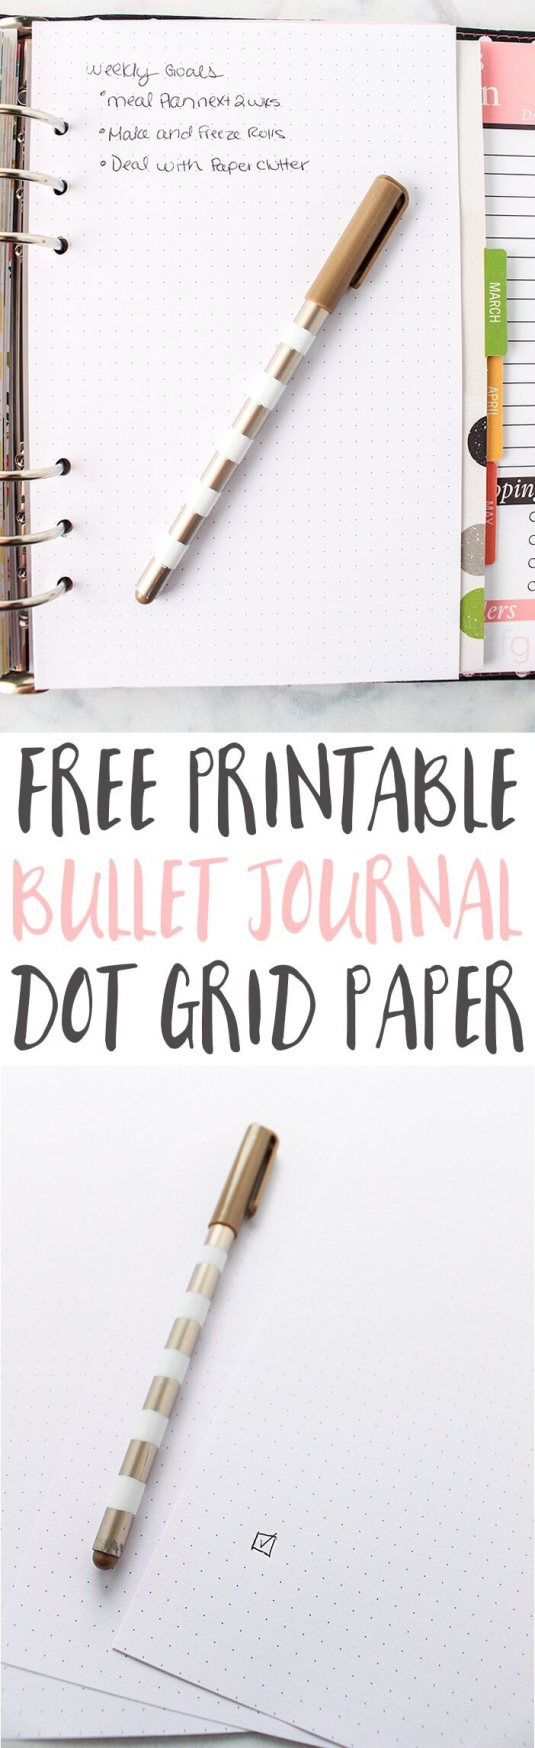 Free Dot Grid Paper Printable